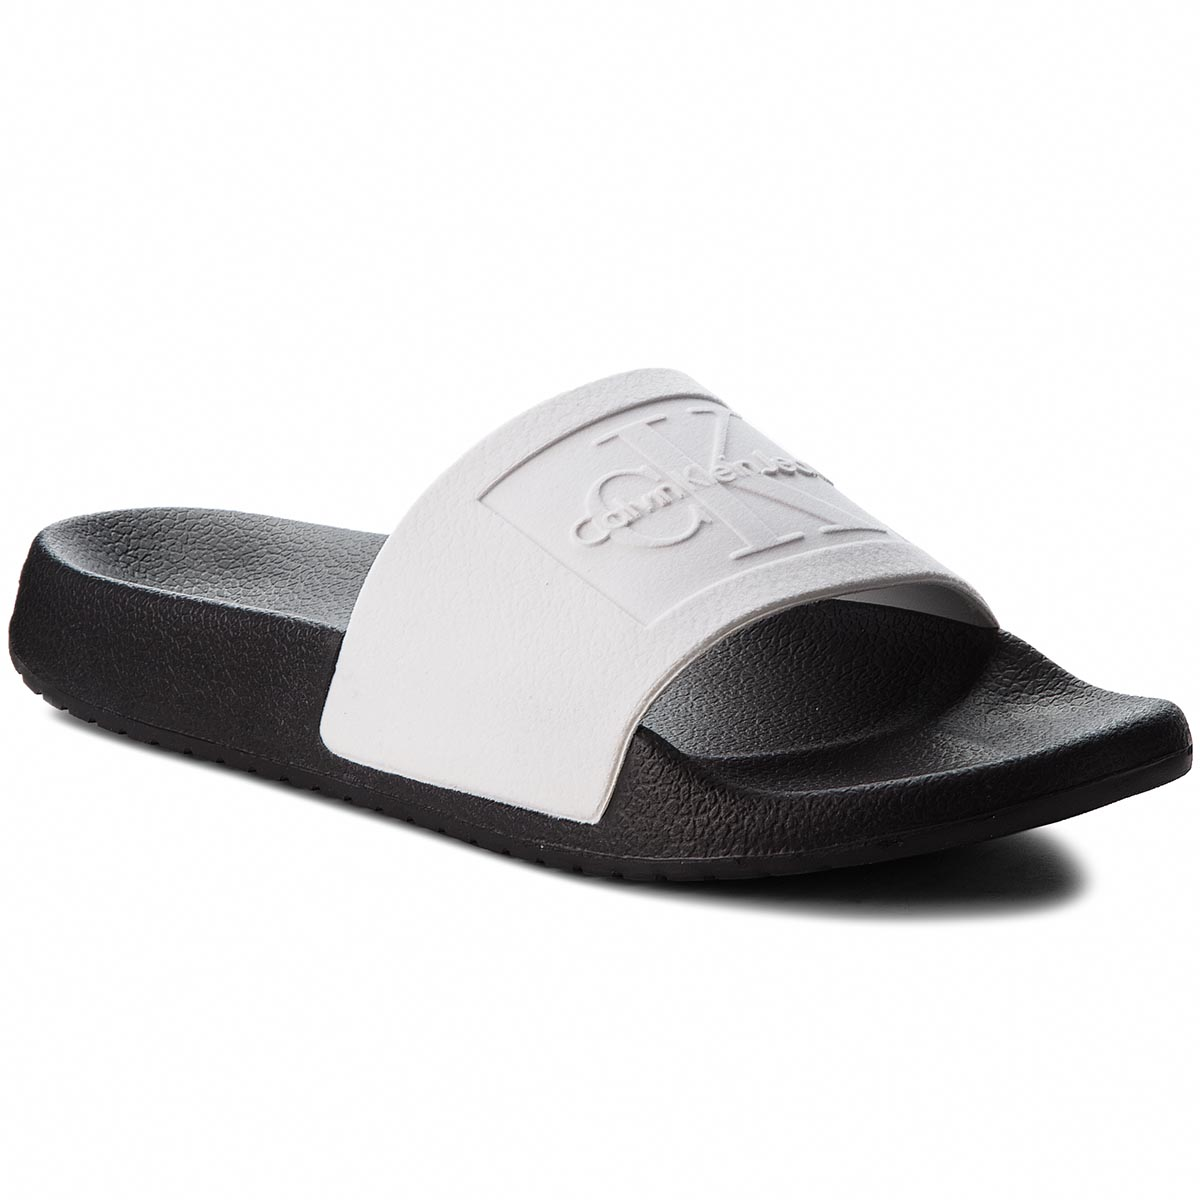 Klapki CALVIN KLEIN JEANS - Christie RE9808 White/Black